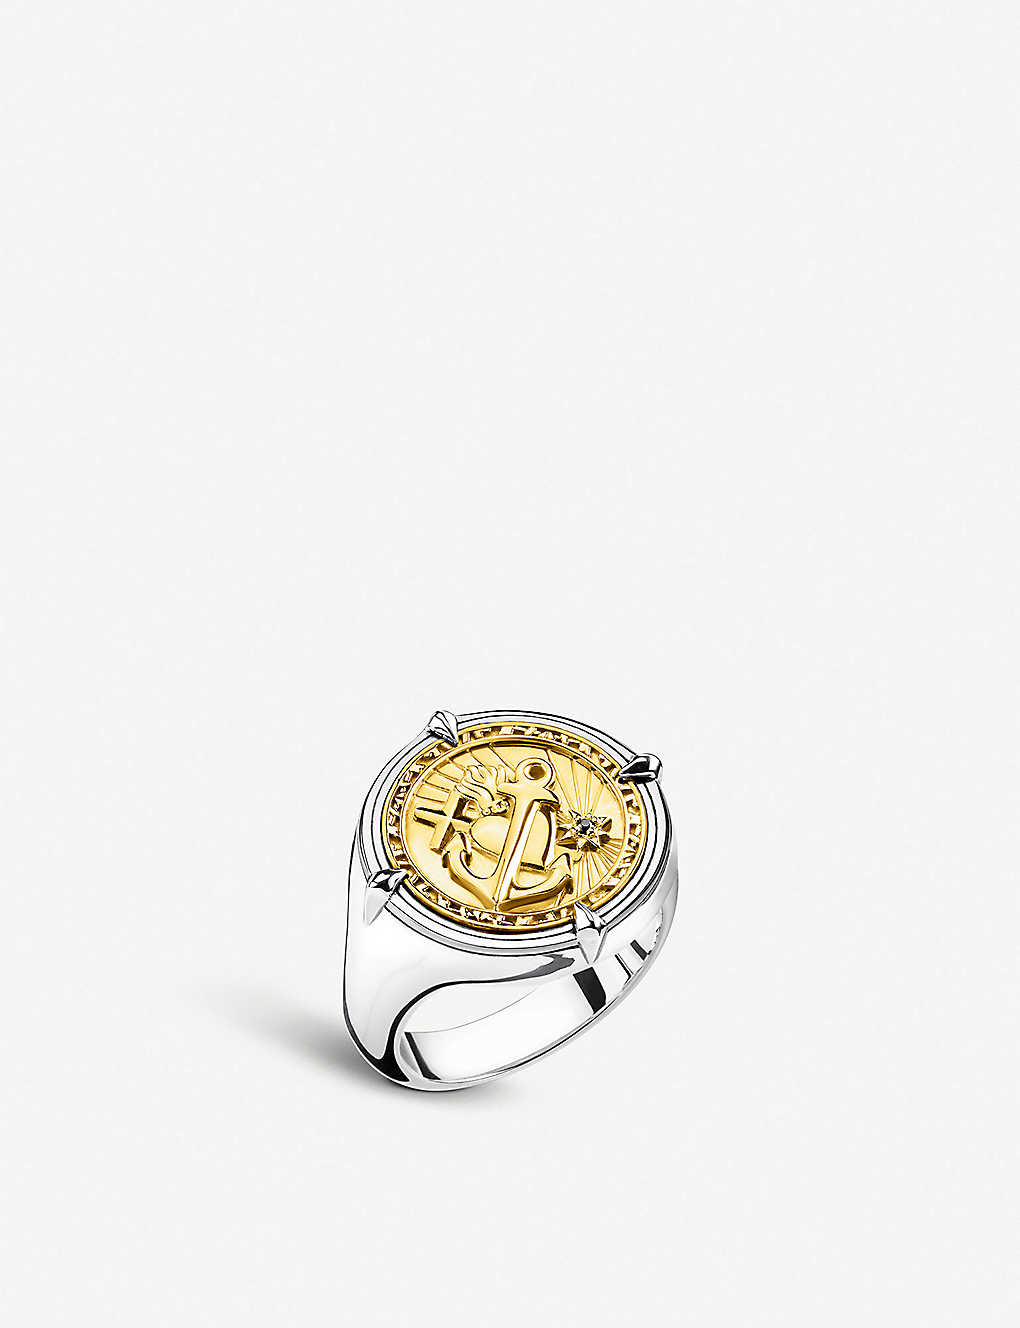 THOMAS SABO: Faith, Love, Hope 18ct yellow-gold plated silver signet ring